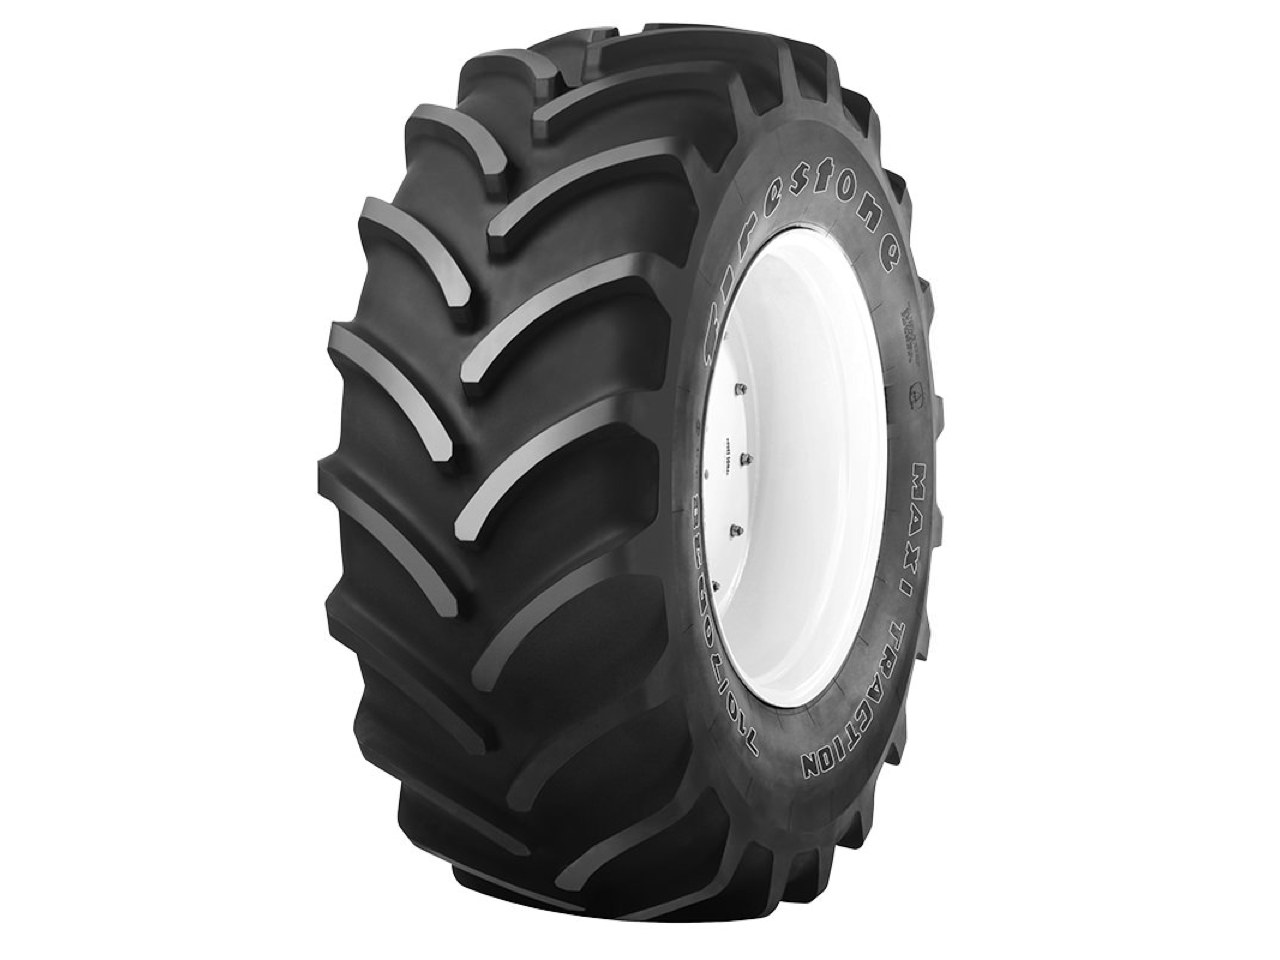 Firestone Maxi Traction Maxi Traction 650/85R38 173D